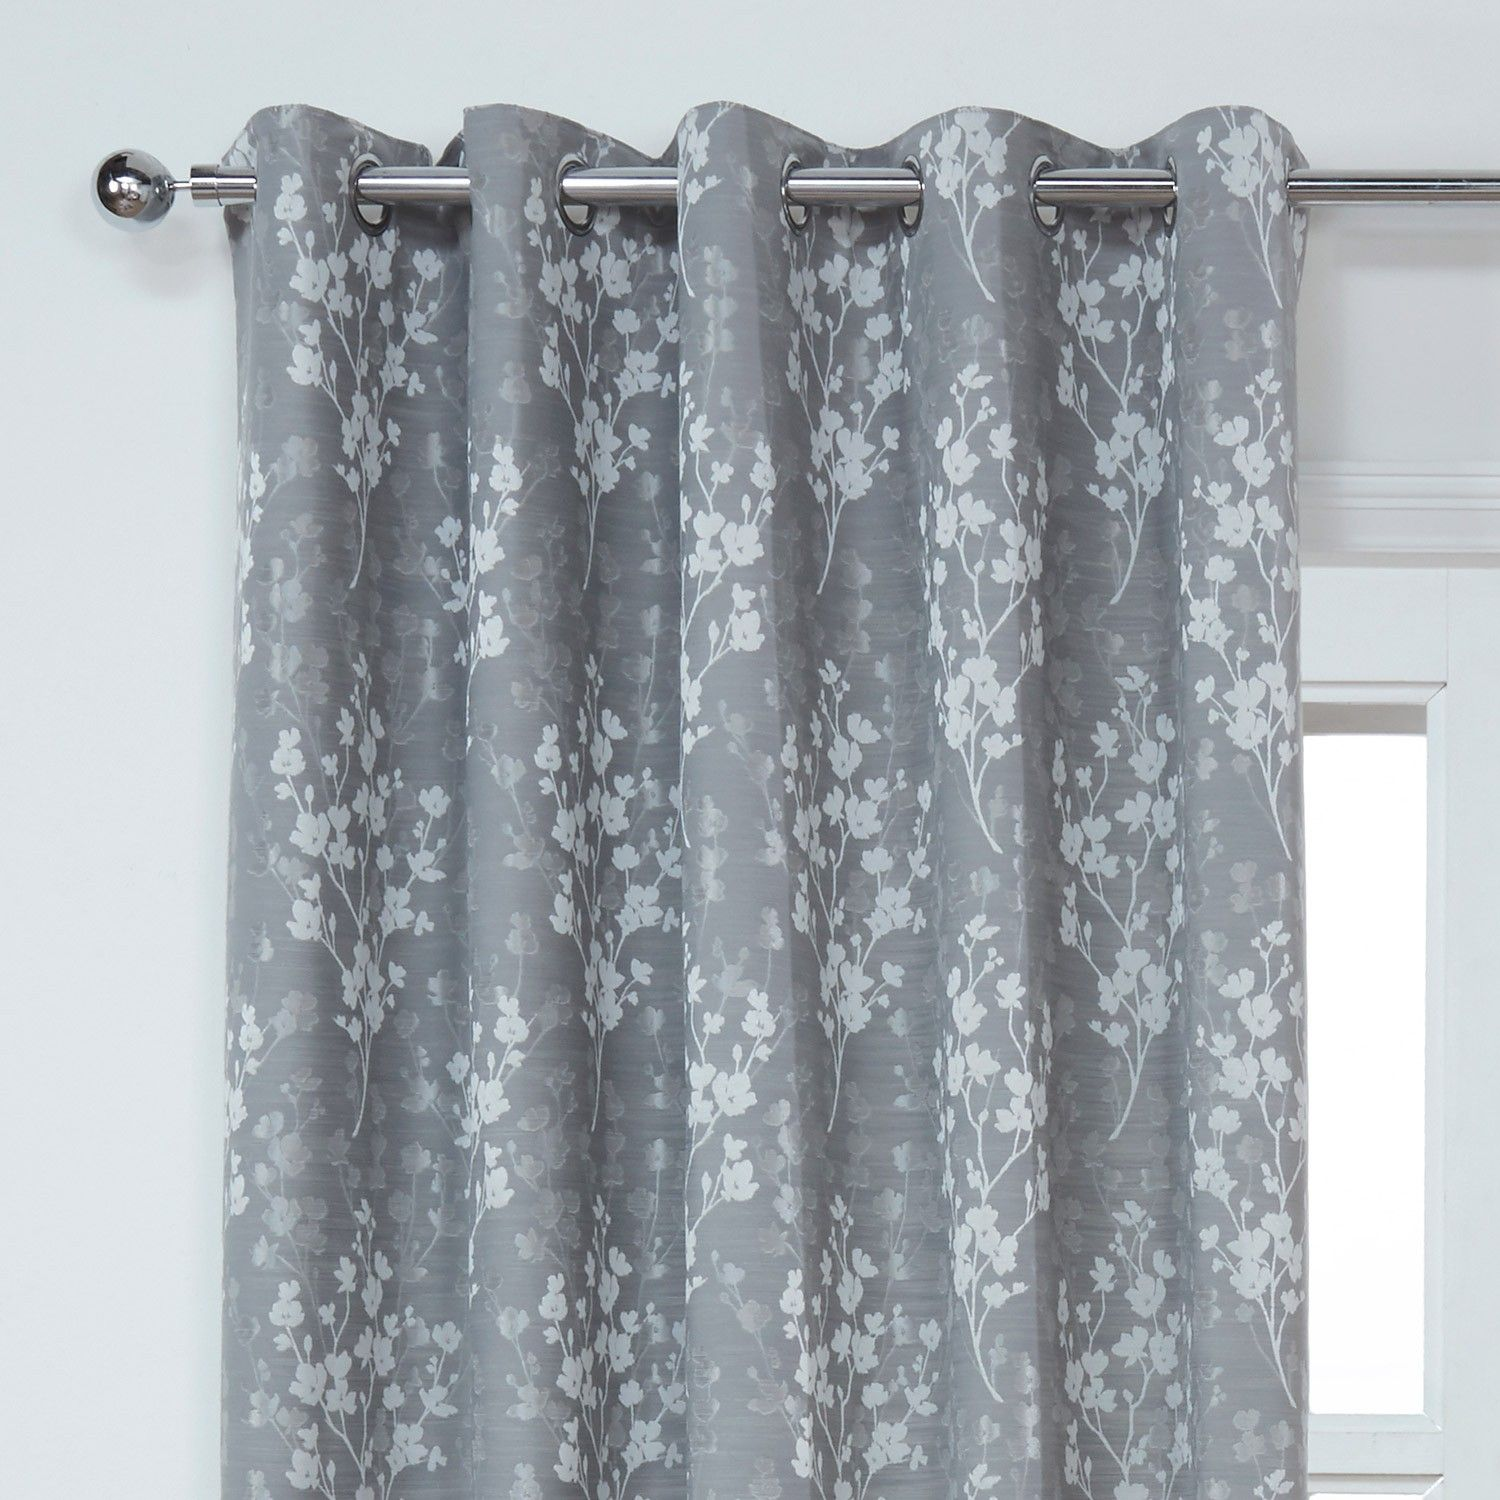 Blossom Silver Grey Floral Lined Eyelet Curtains Pair